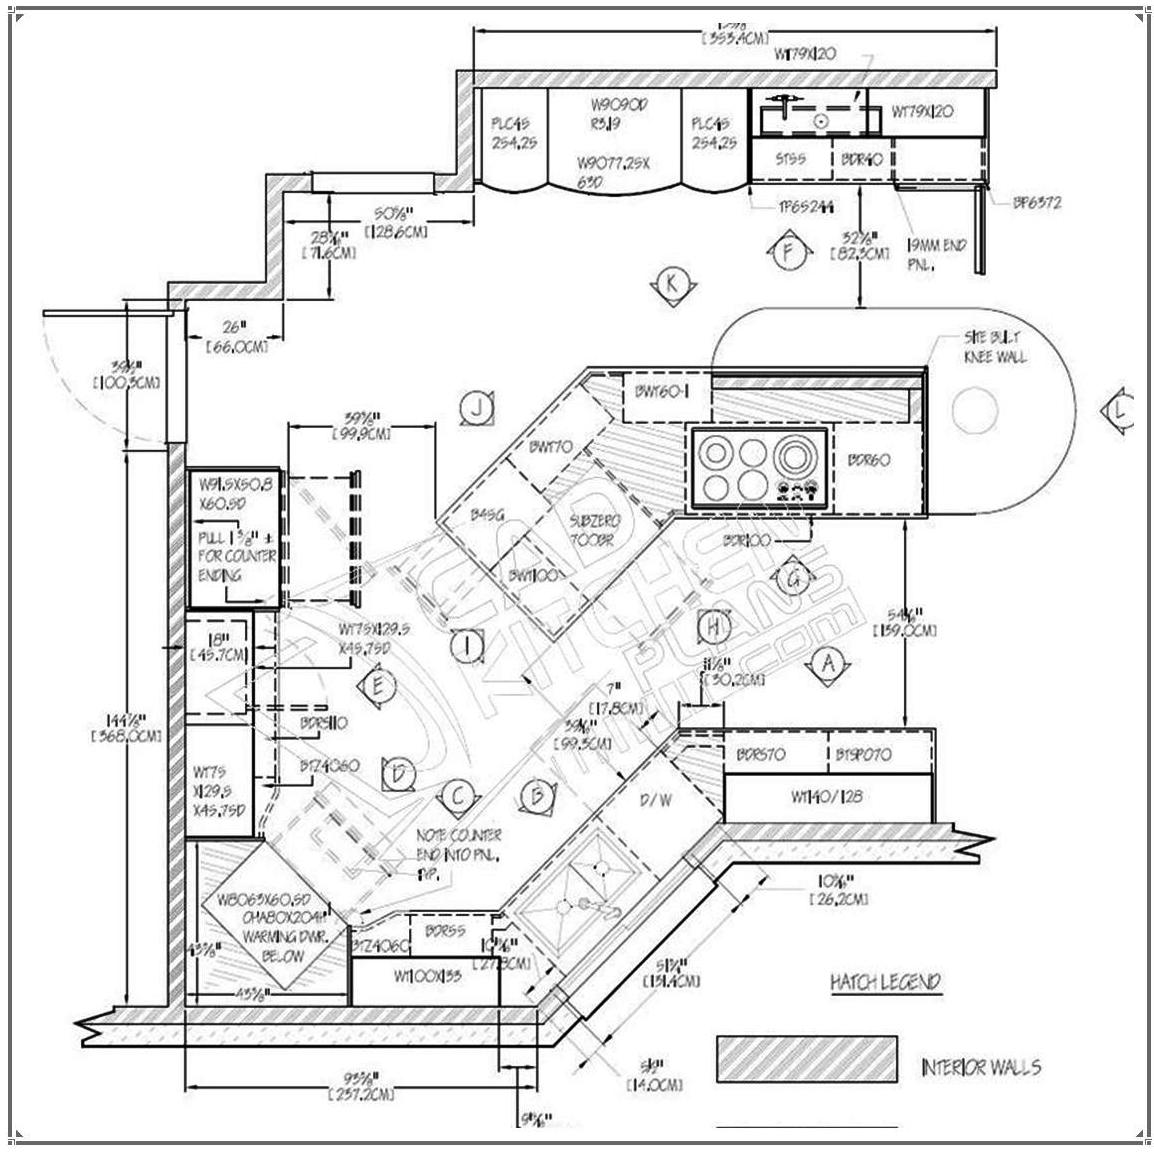 Kitchen Autocad Drawing At Getdrawings